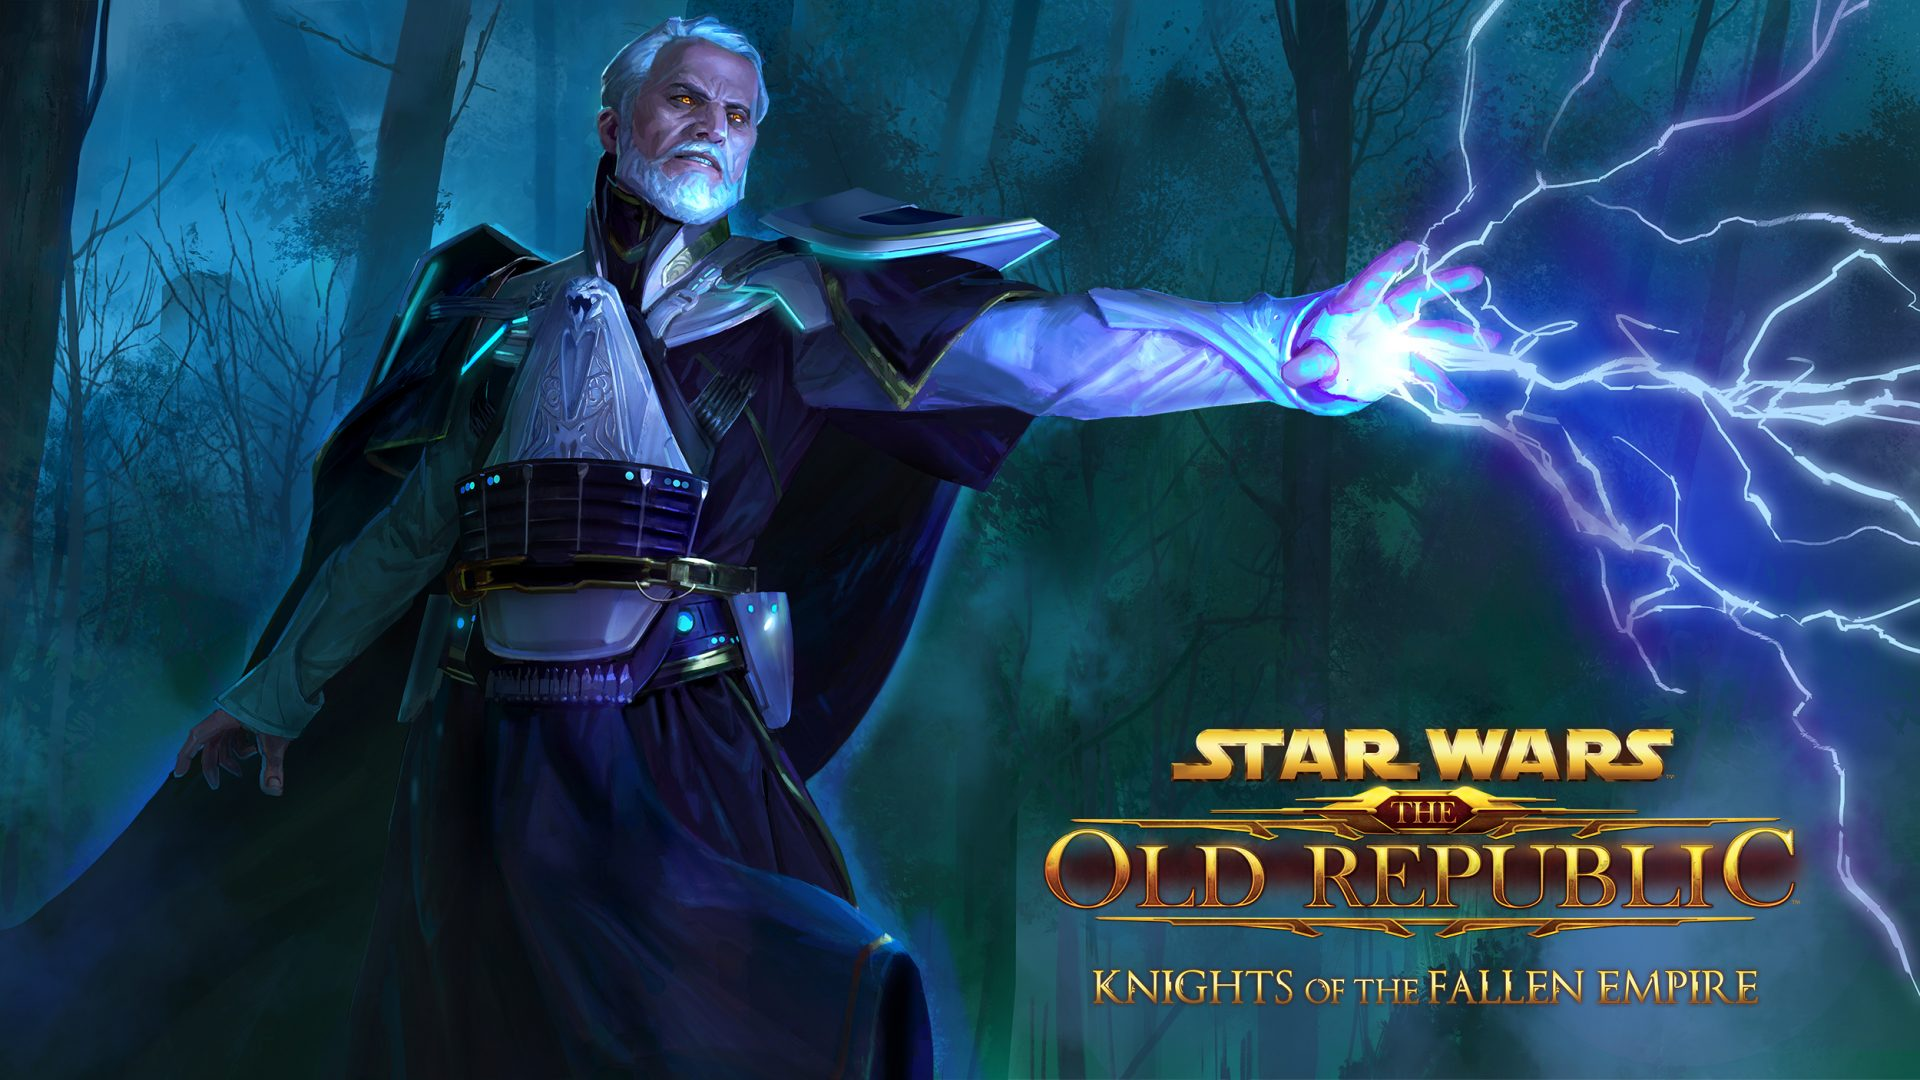 Next Star Wars The Old Republic Episode Coming Next Month